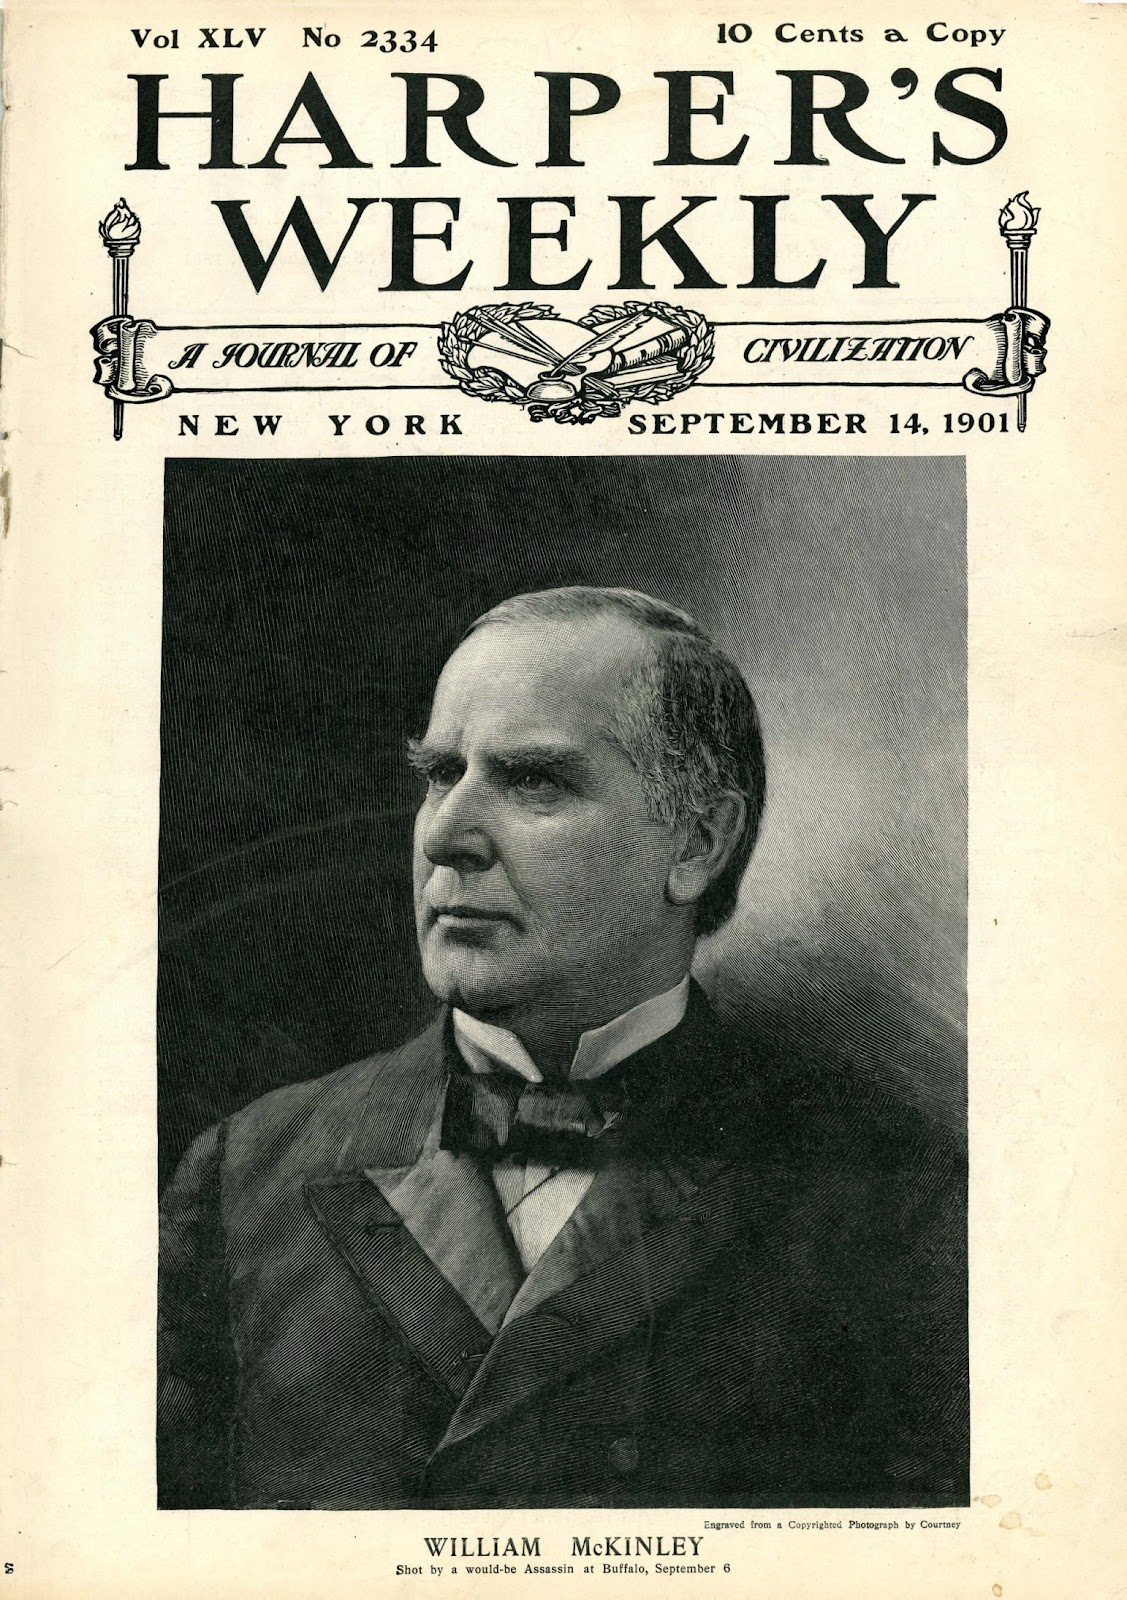 American History: William McKinley President Election of 1896